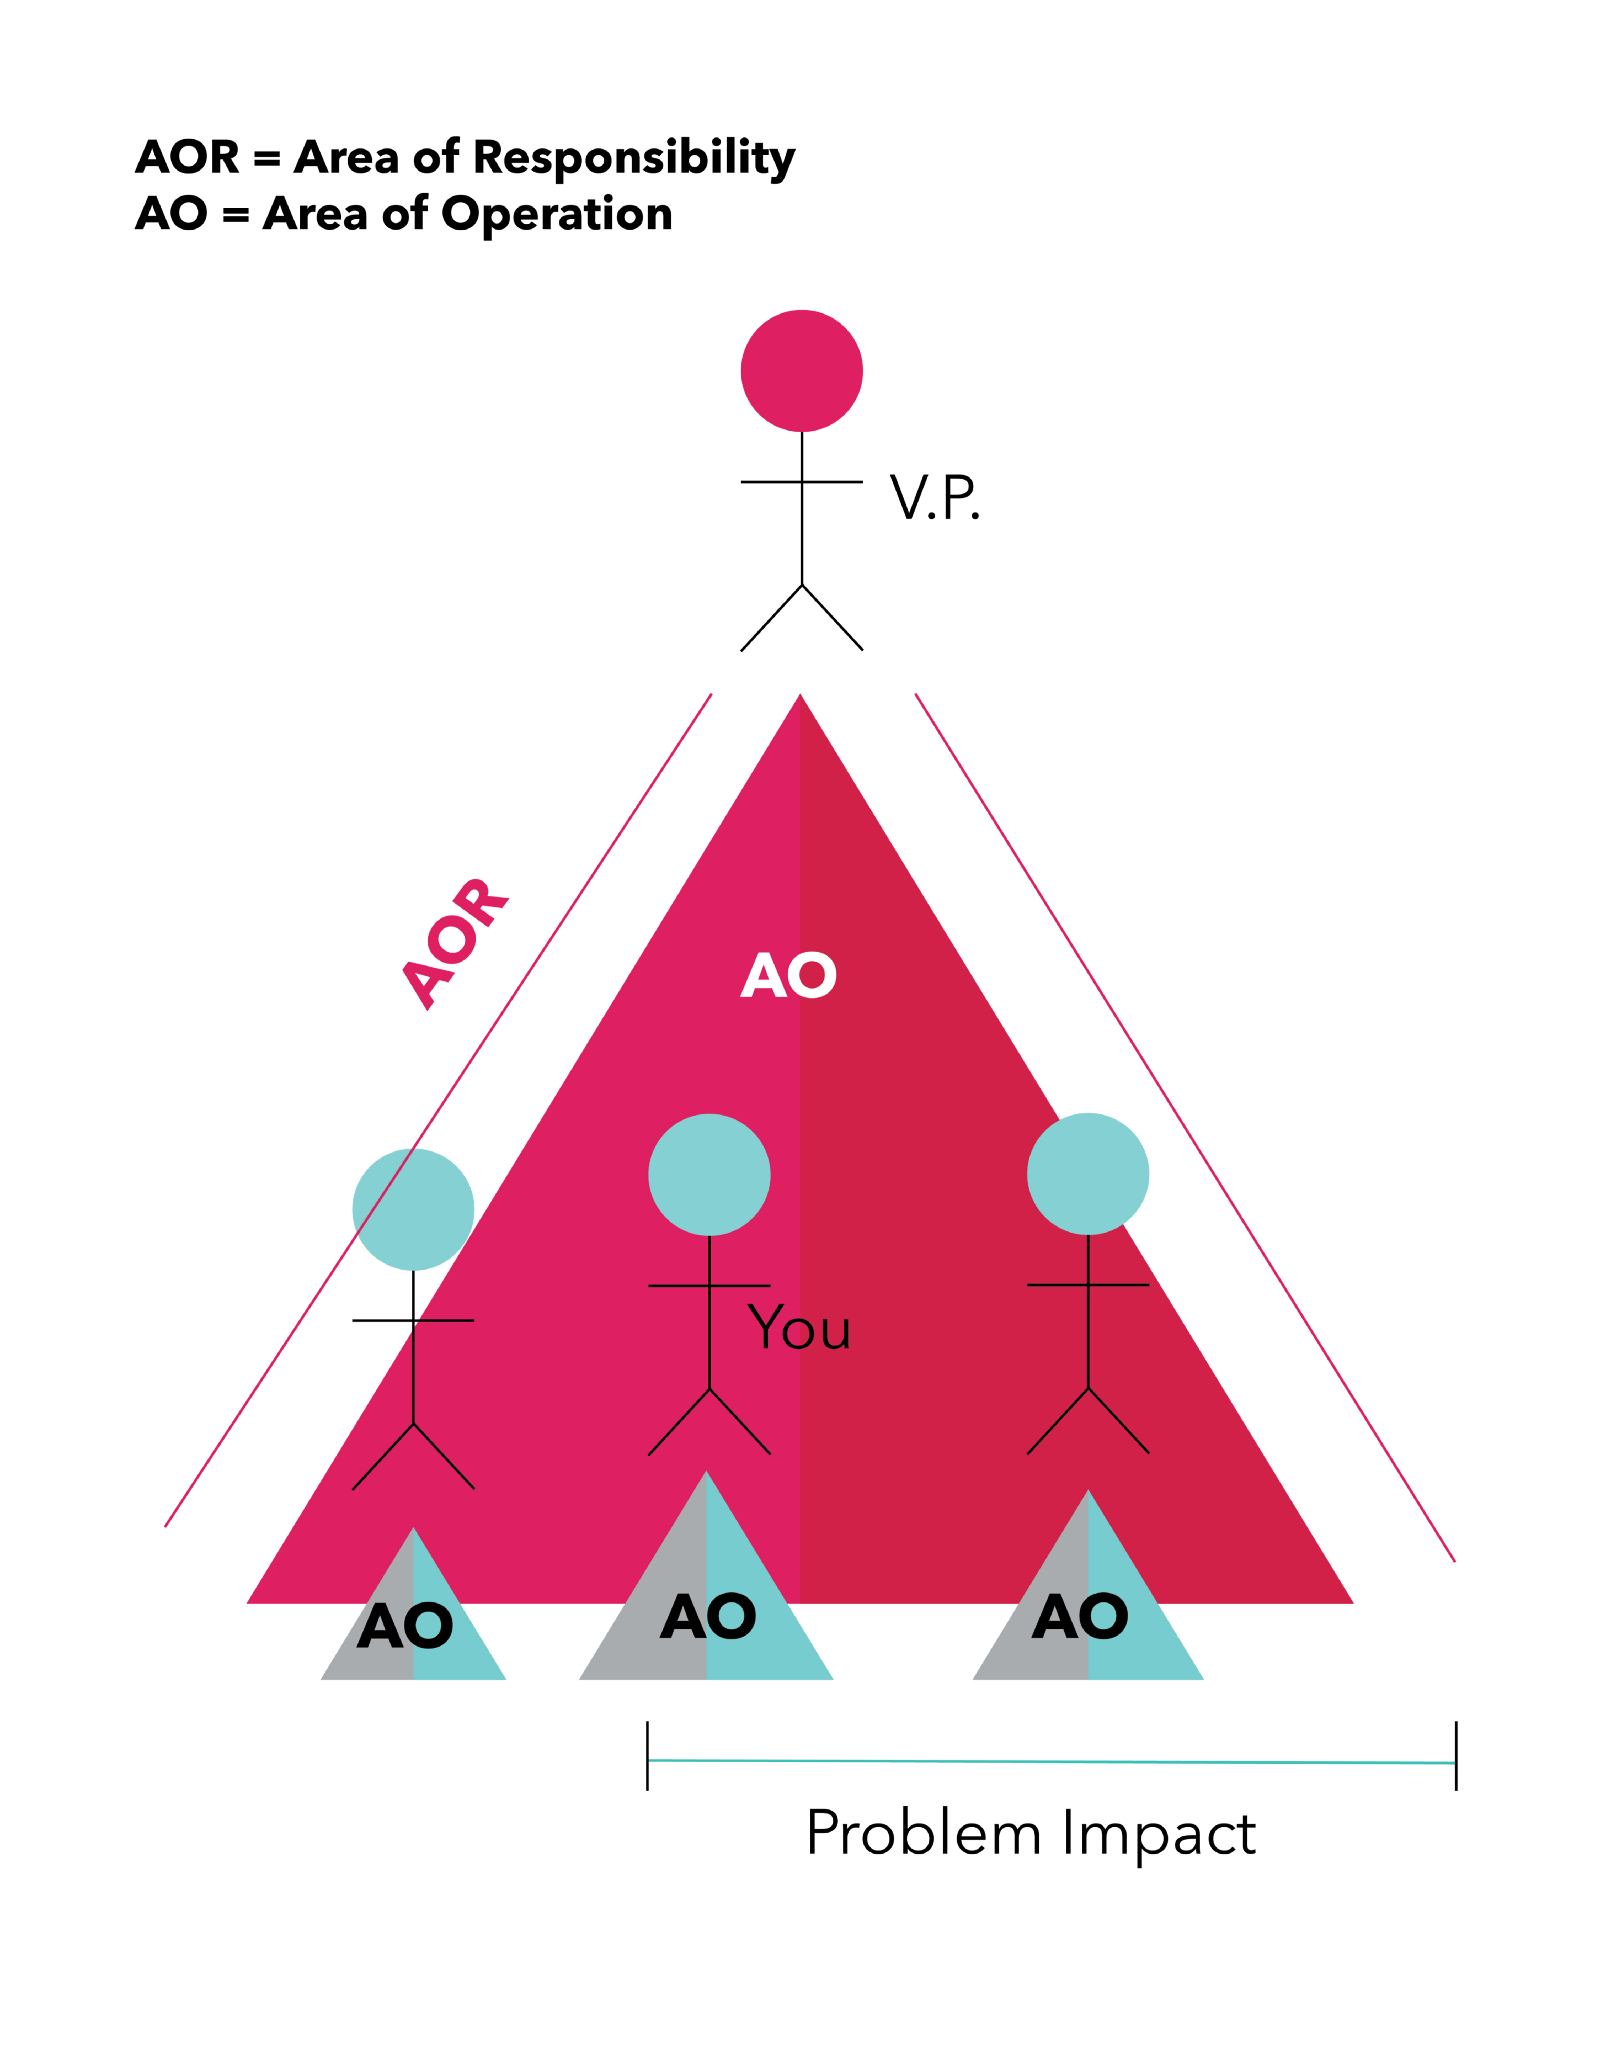 Area of Responsibility graphic. One person at the top of a pyramid, three people below on the bottom of the pyramid. The person at the top is the V.P. Their AOR is the entire pyramid. The people on the bottom have smaller AOR's below them.